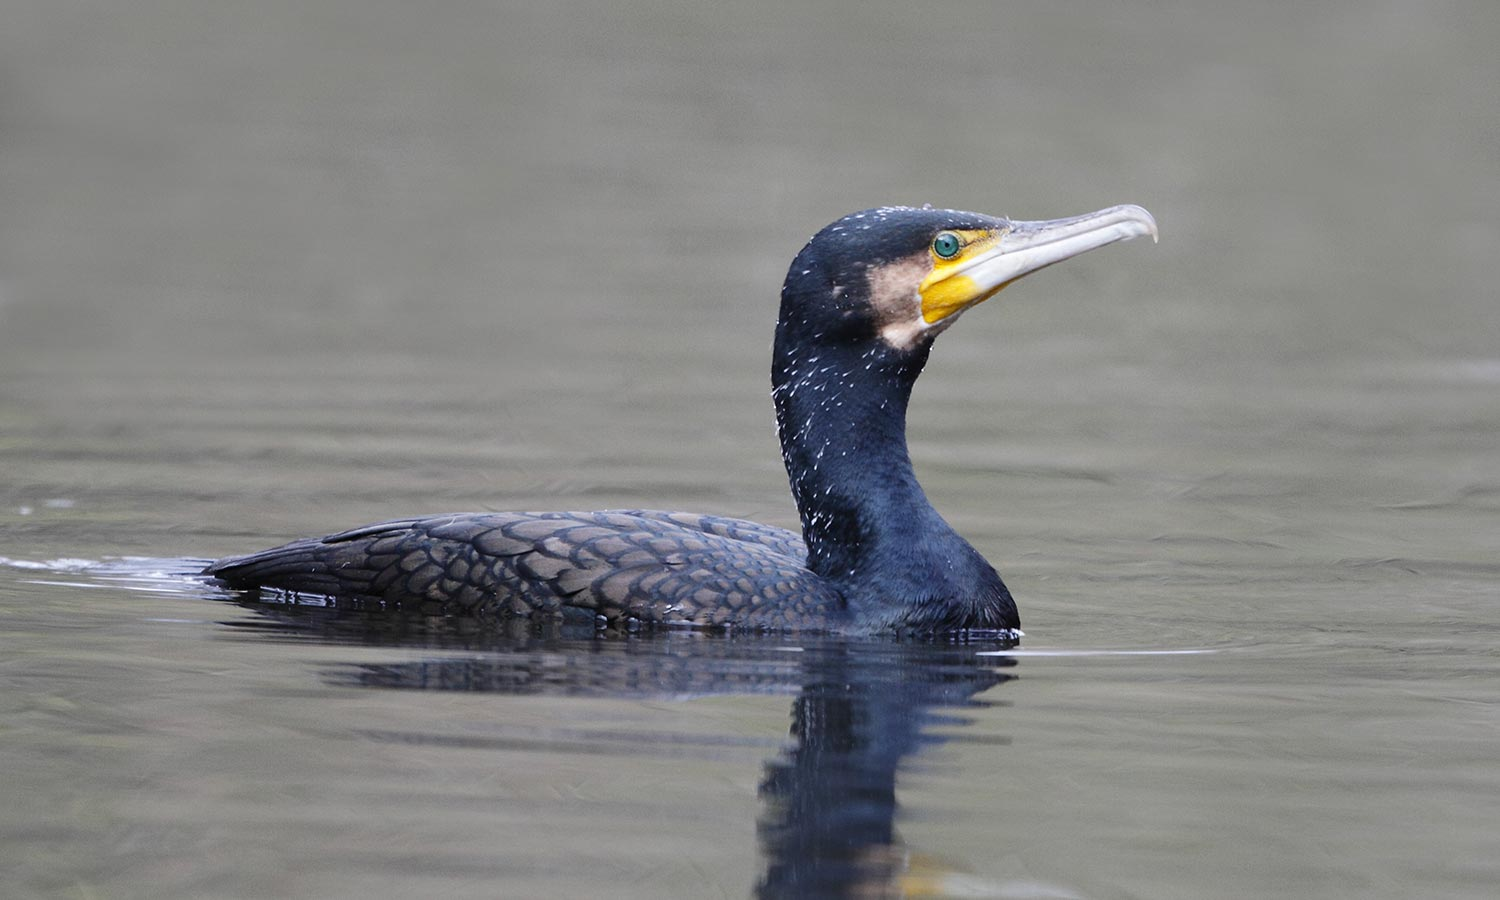 Kormoran © H. Glader/piclease